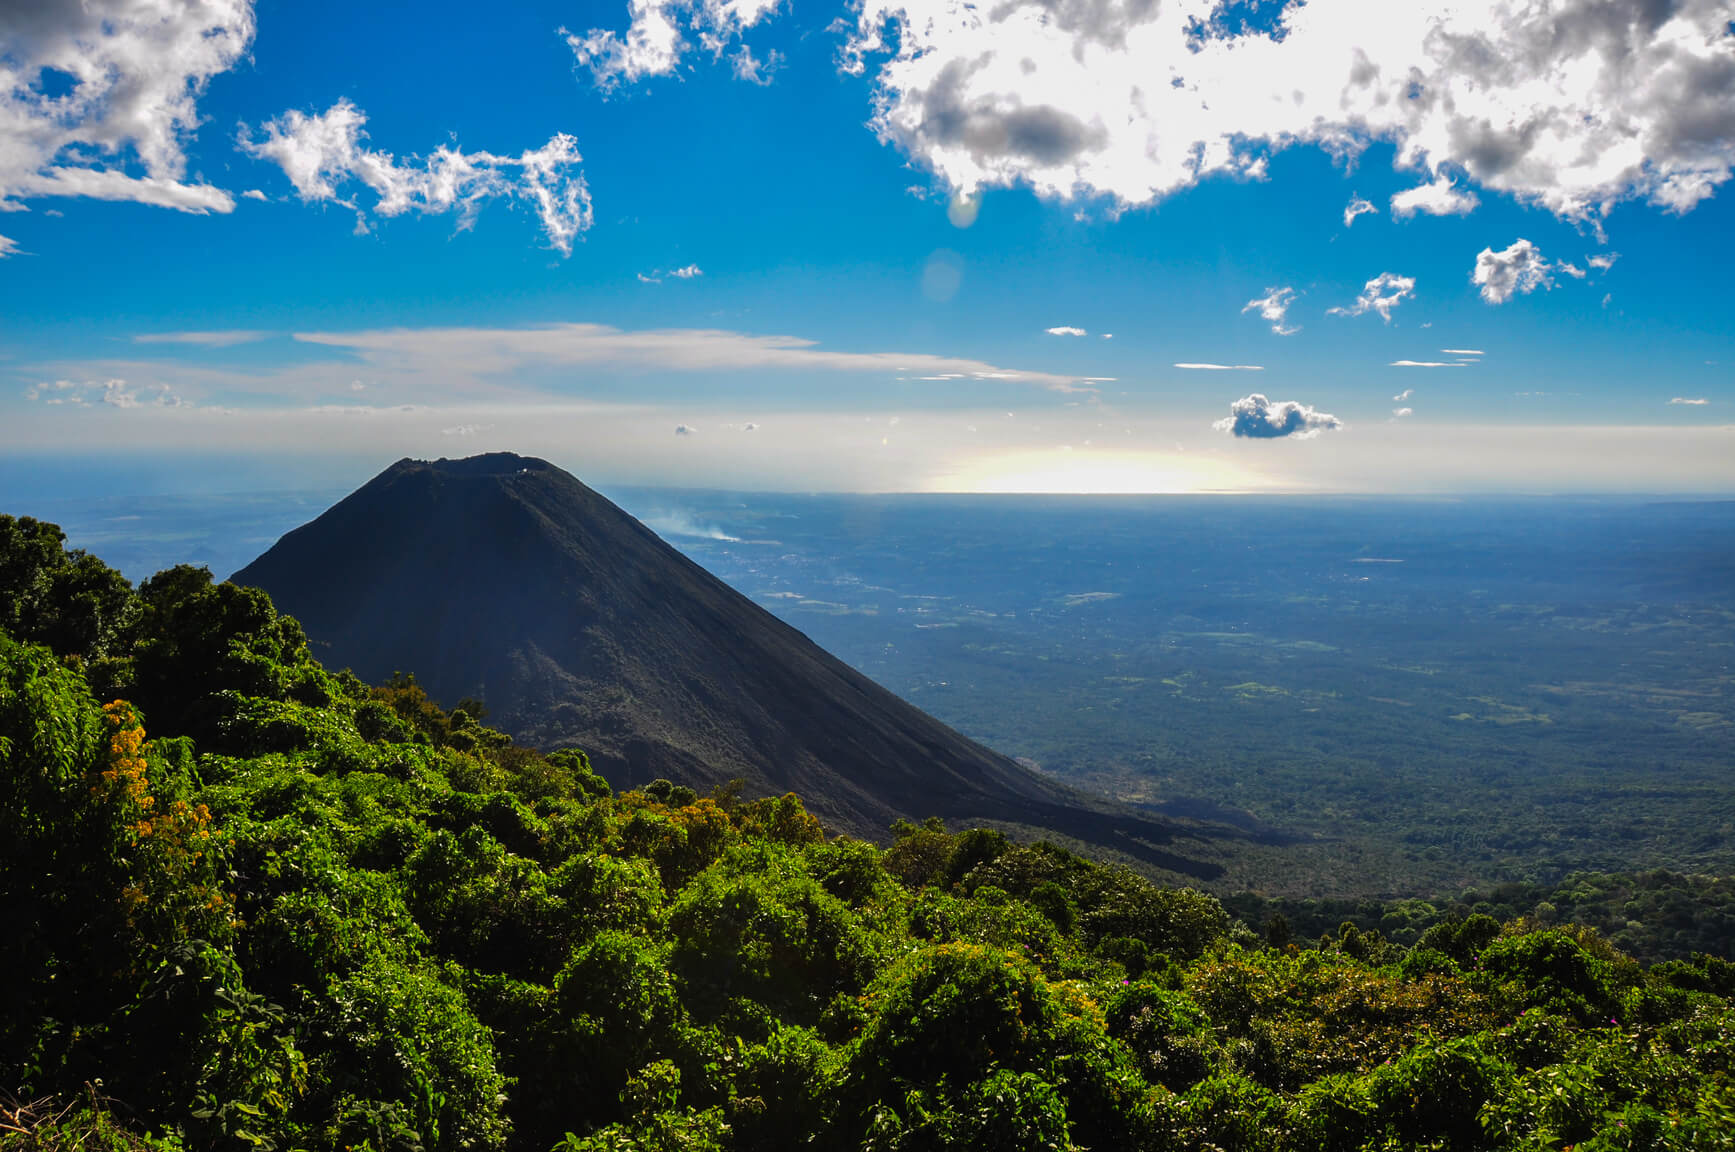 Vancouver, Canada to El Salvador for only $436 CAD roundtrip